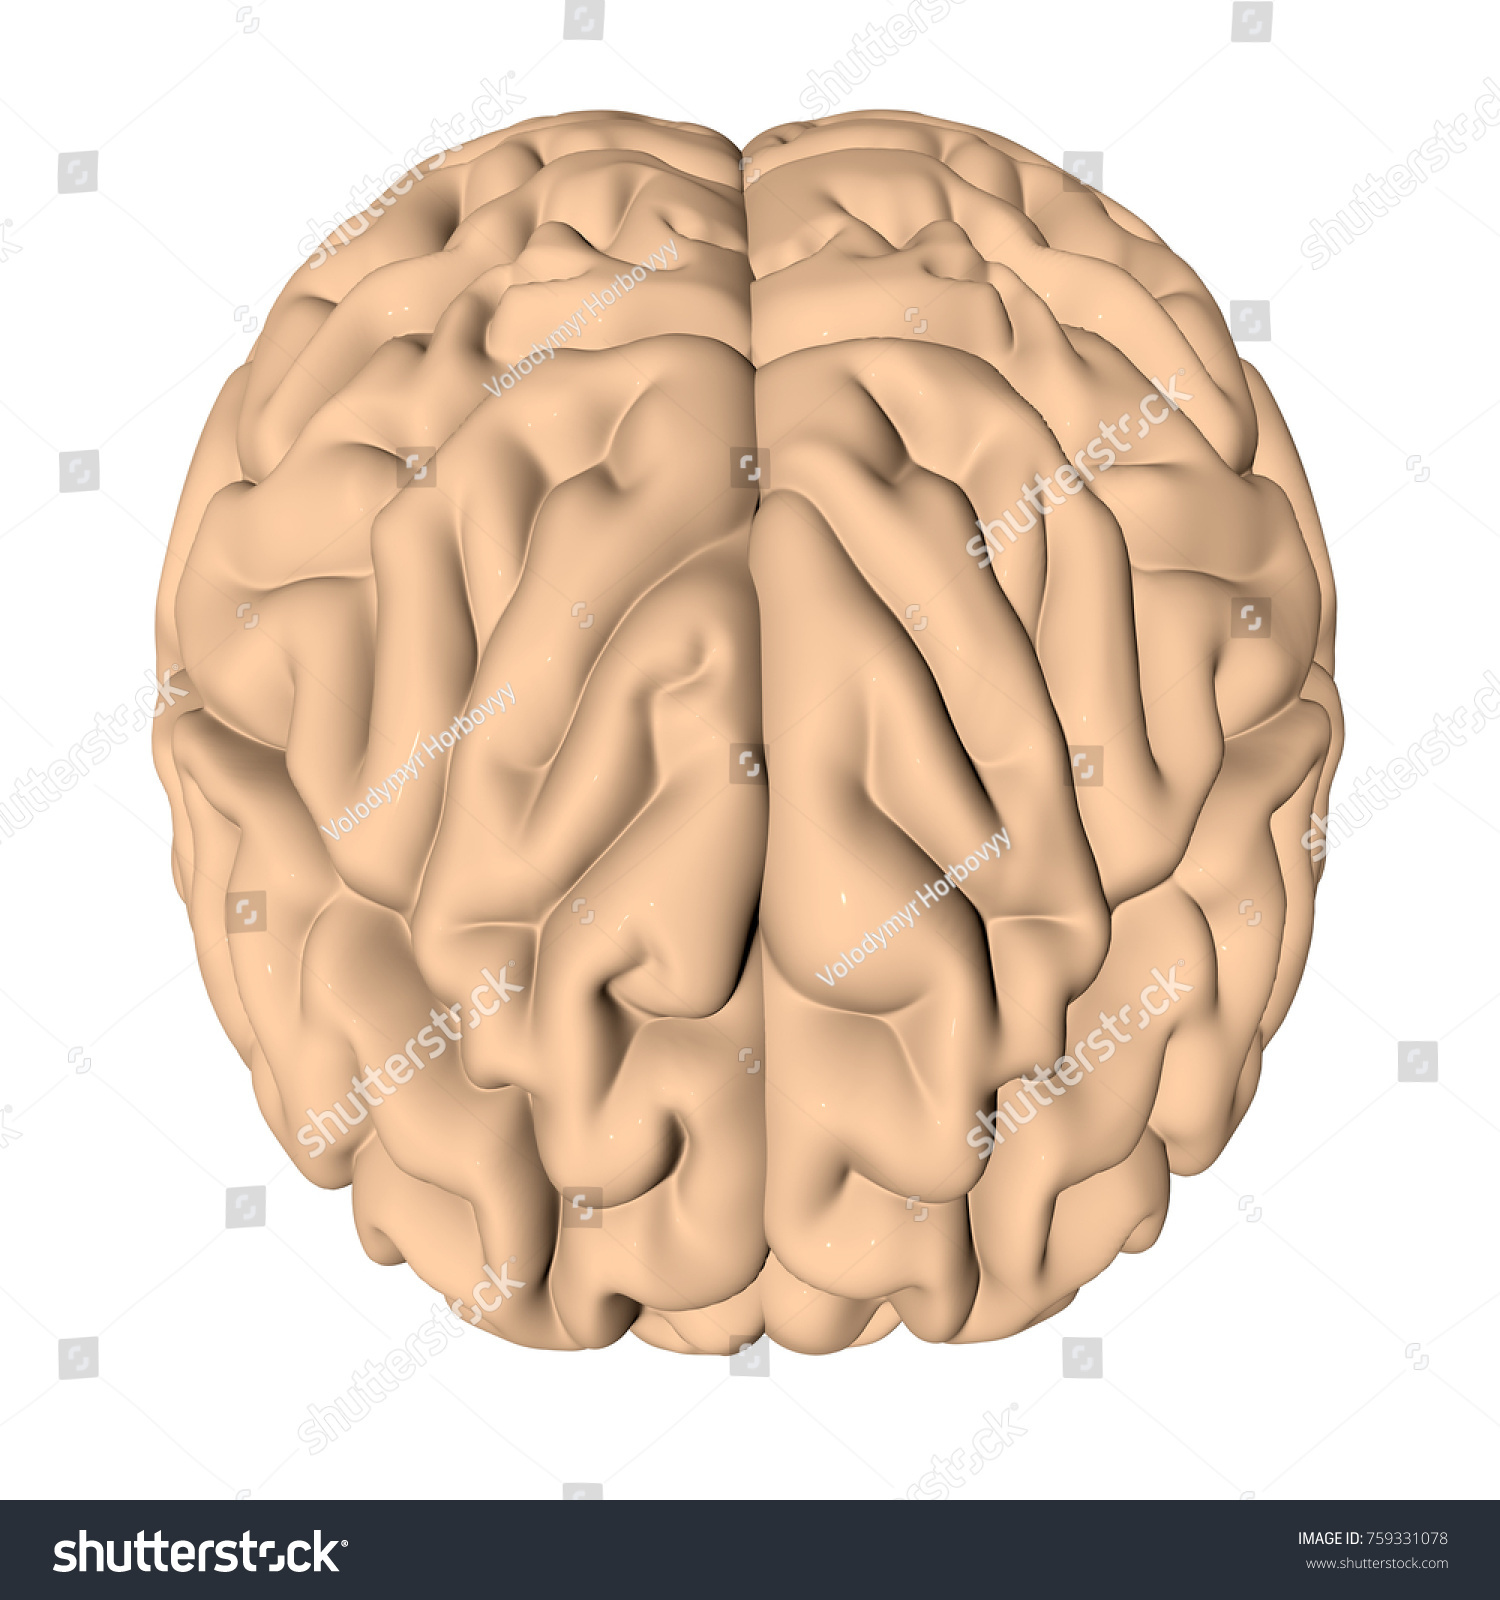 Human Brain 3 D Render Stock Illustration 759331078 - Shutterstock